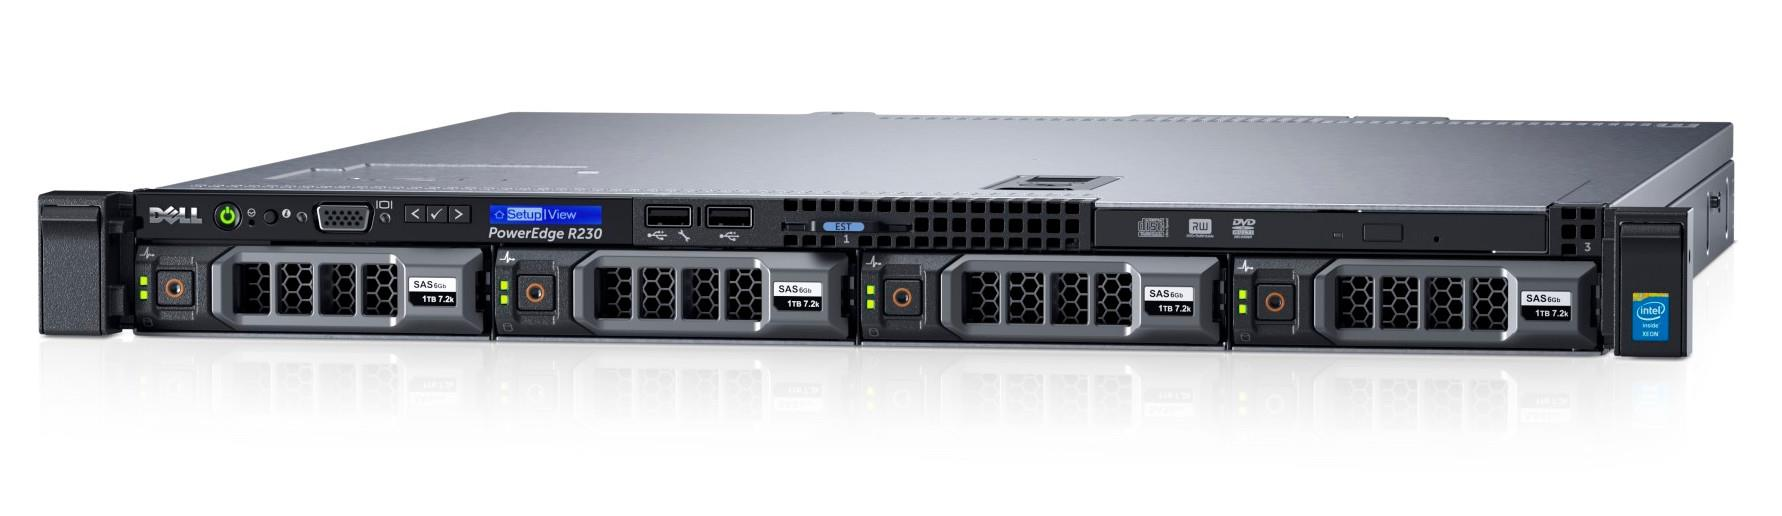 MÁY CHỦ DELL POWEREDGE R220 E3-1220v3 (3.1GHz/4-core/8MB)